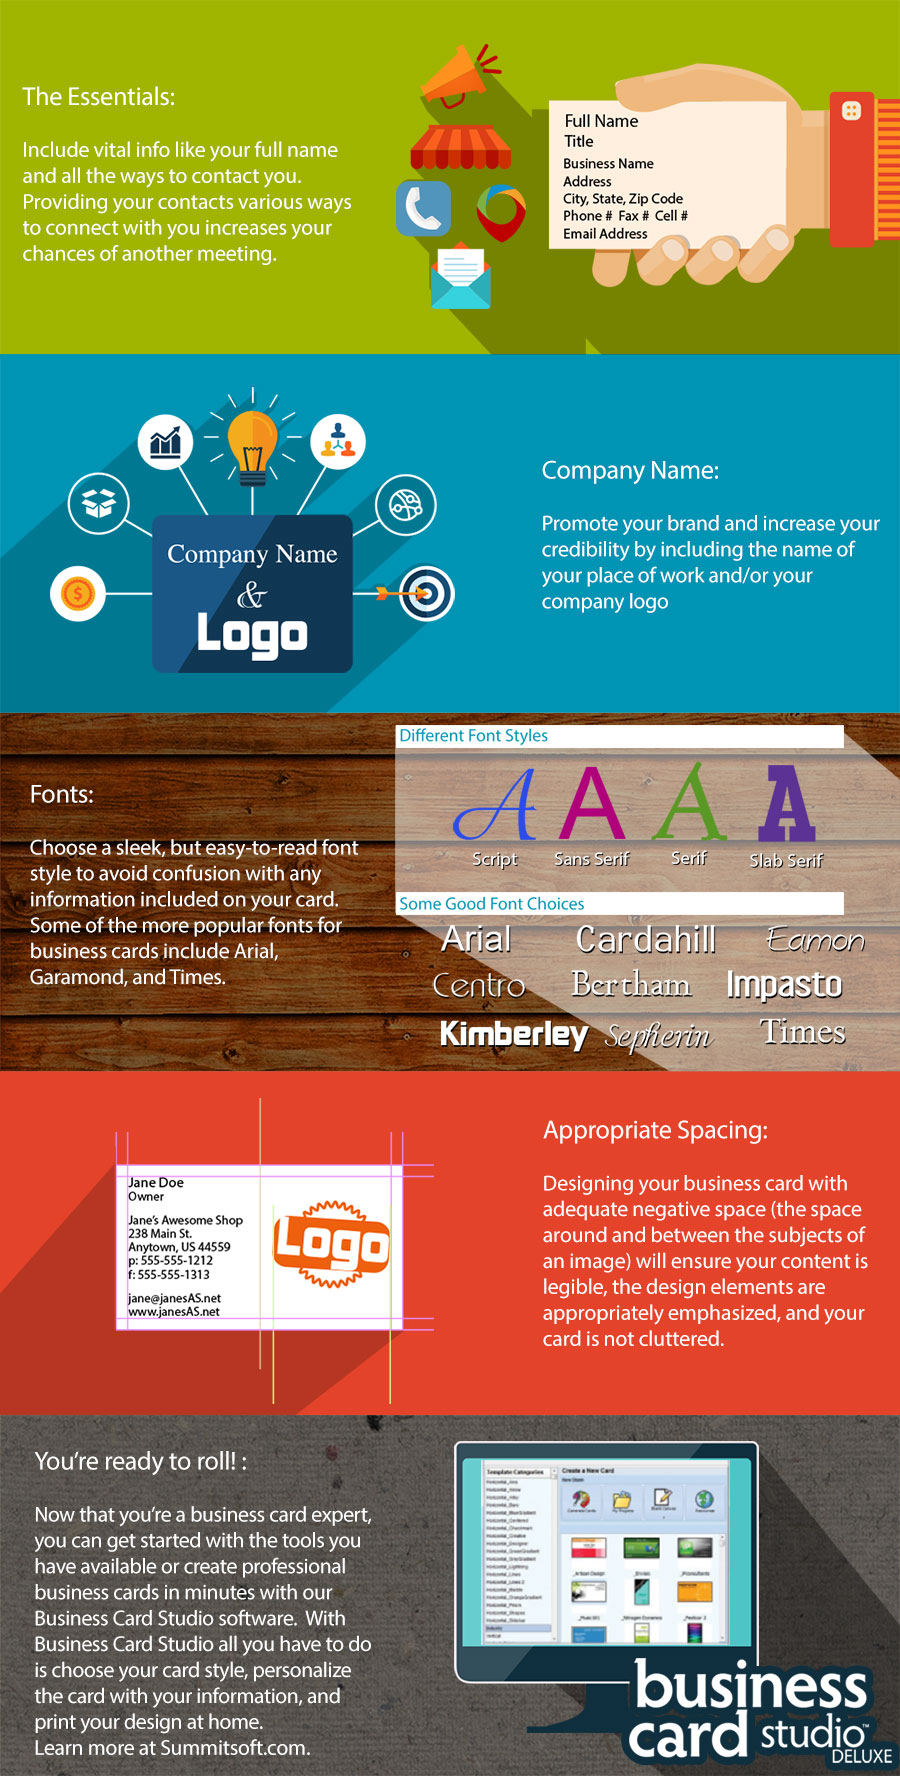 Business cards 101 1 selling logo software for over 15 years businesscardstudioinfographic magicingreecefo Gallery